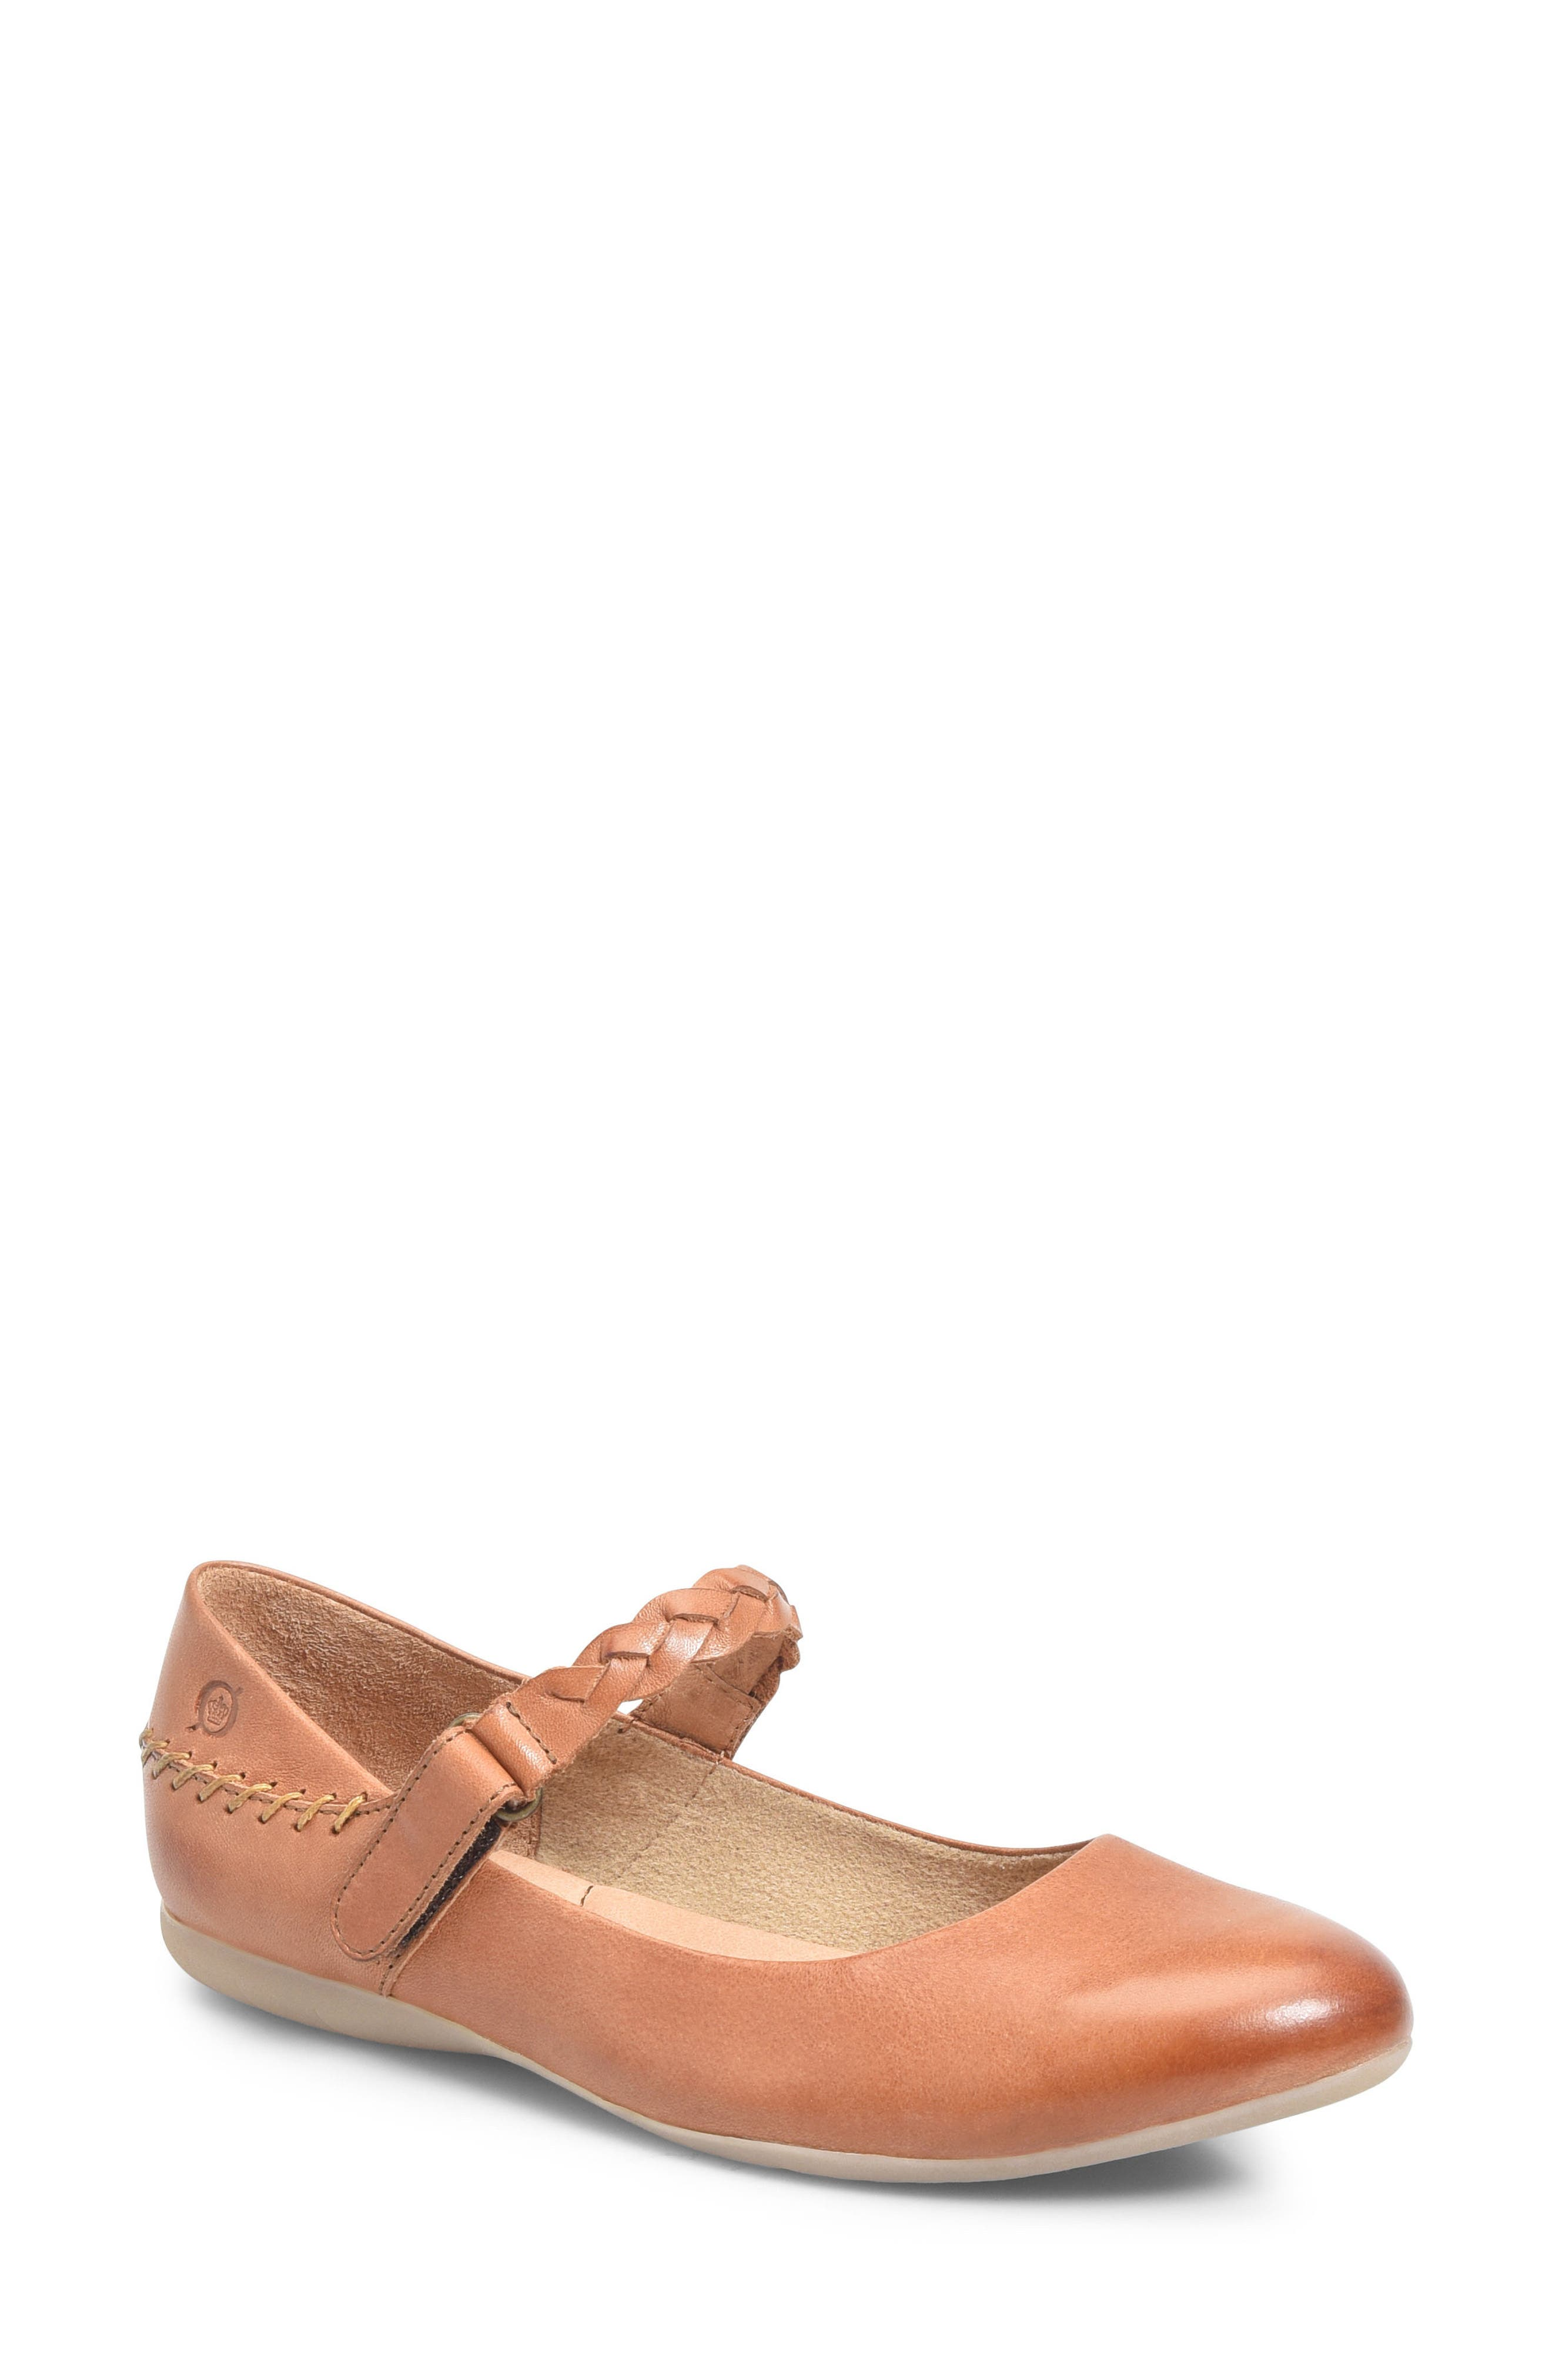 Mary Jane Flat,                         Main,                         color, Rust Leather